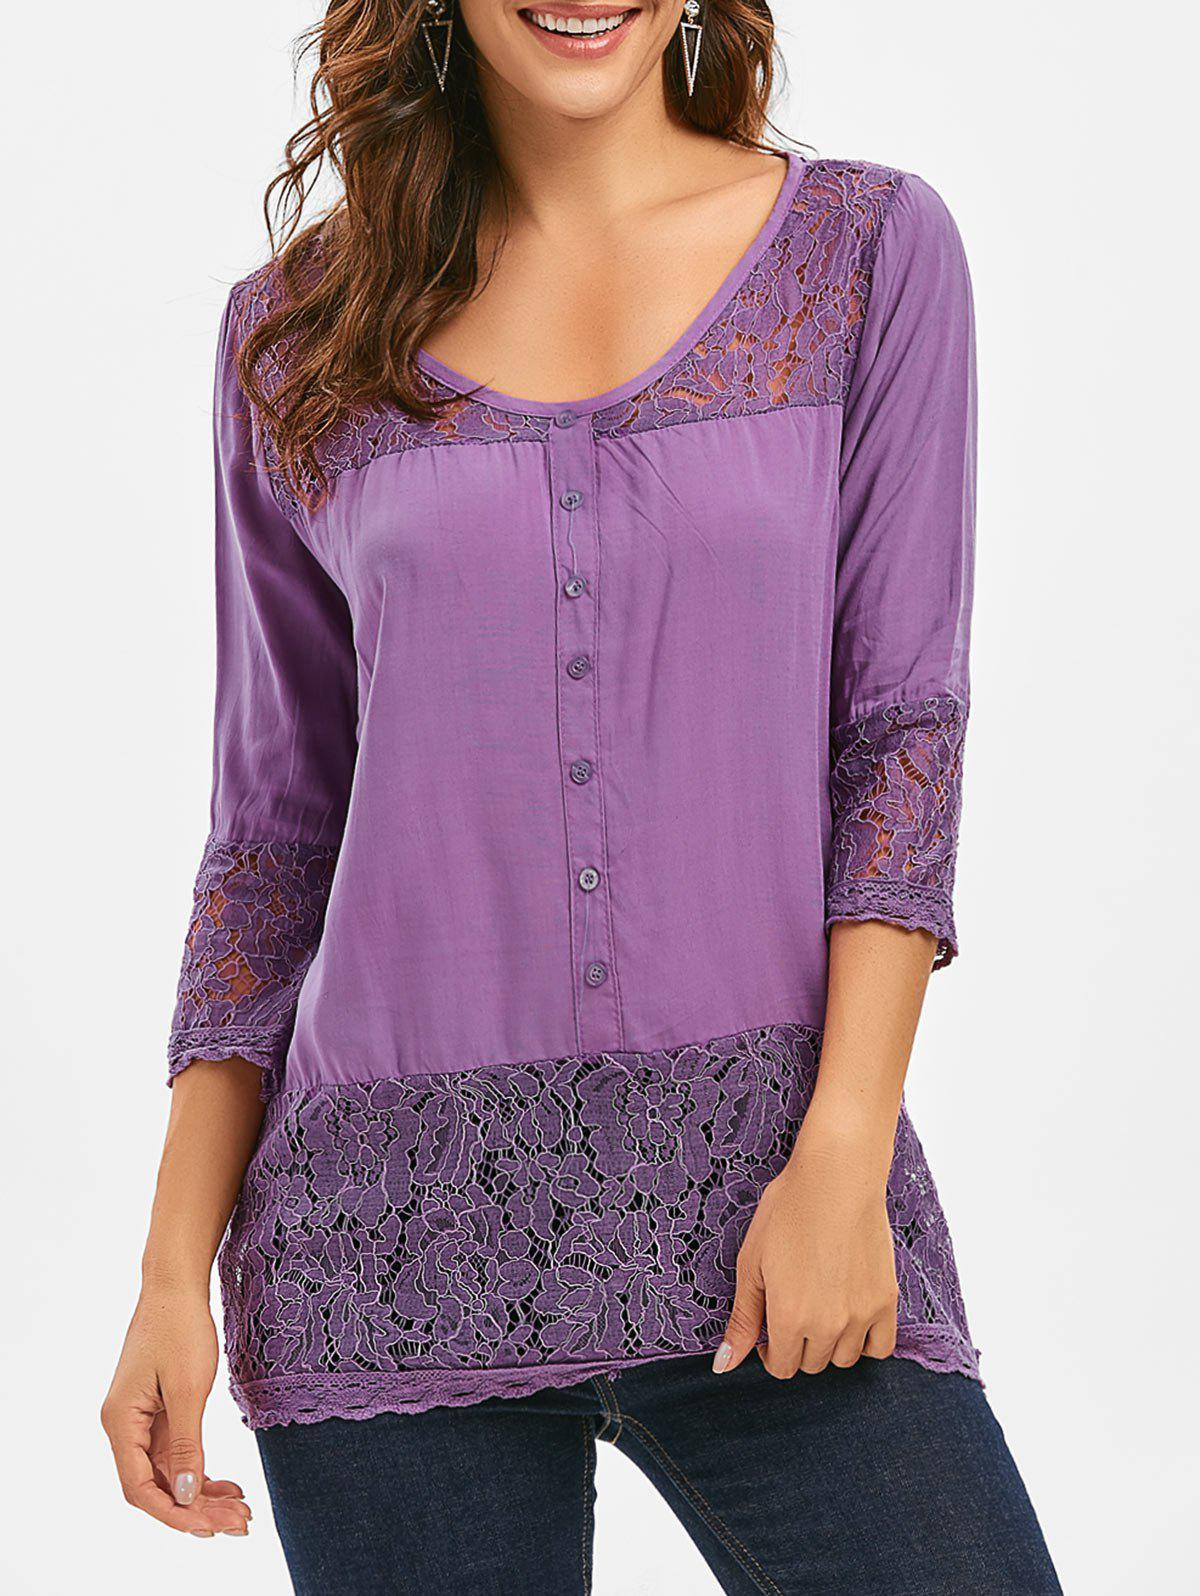 Hot Lace Panel Button Tunic Top